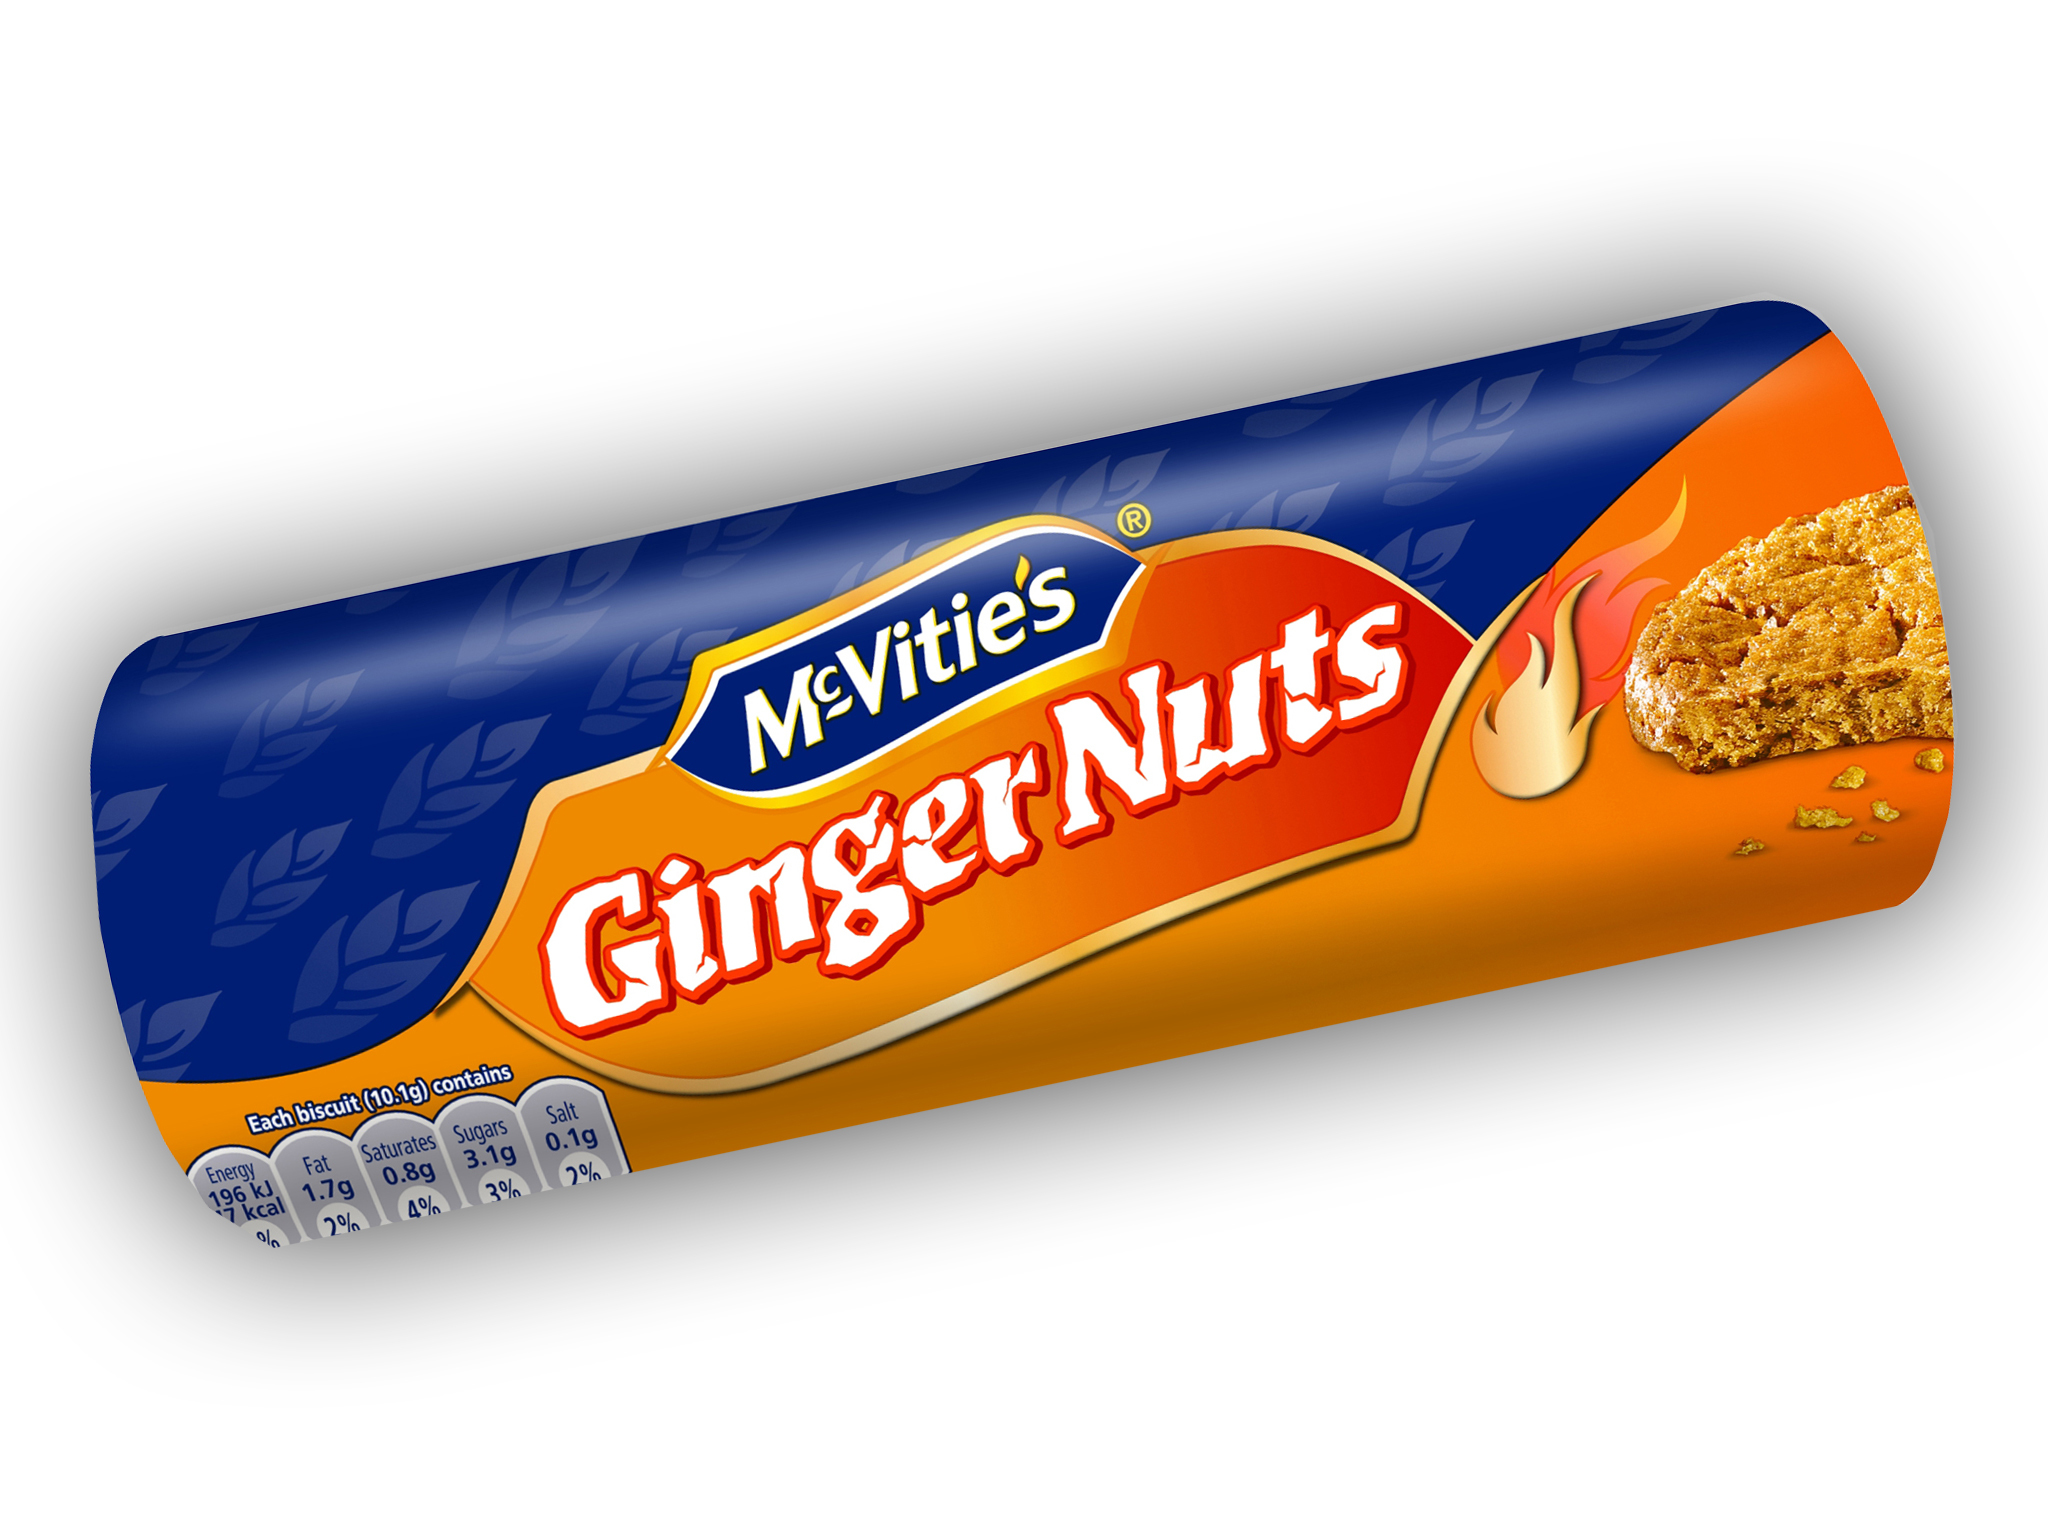 The best biscuits ranked, Ginger nuts